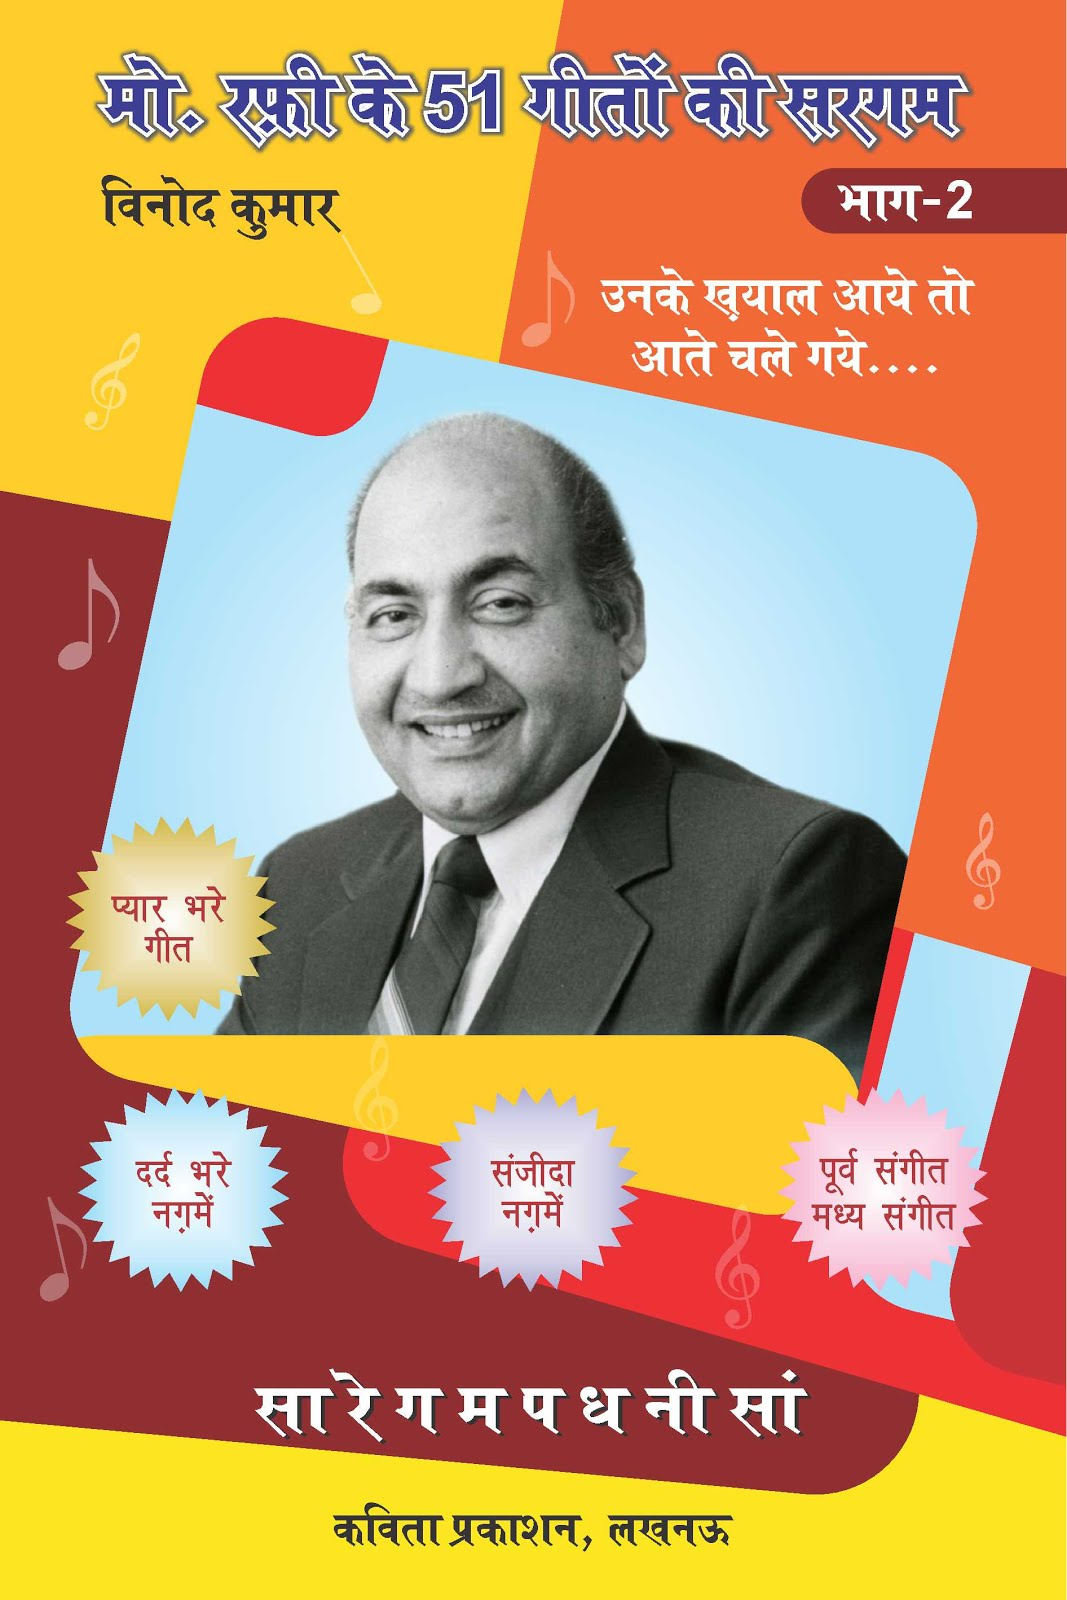 Md RAFI BOOK